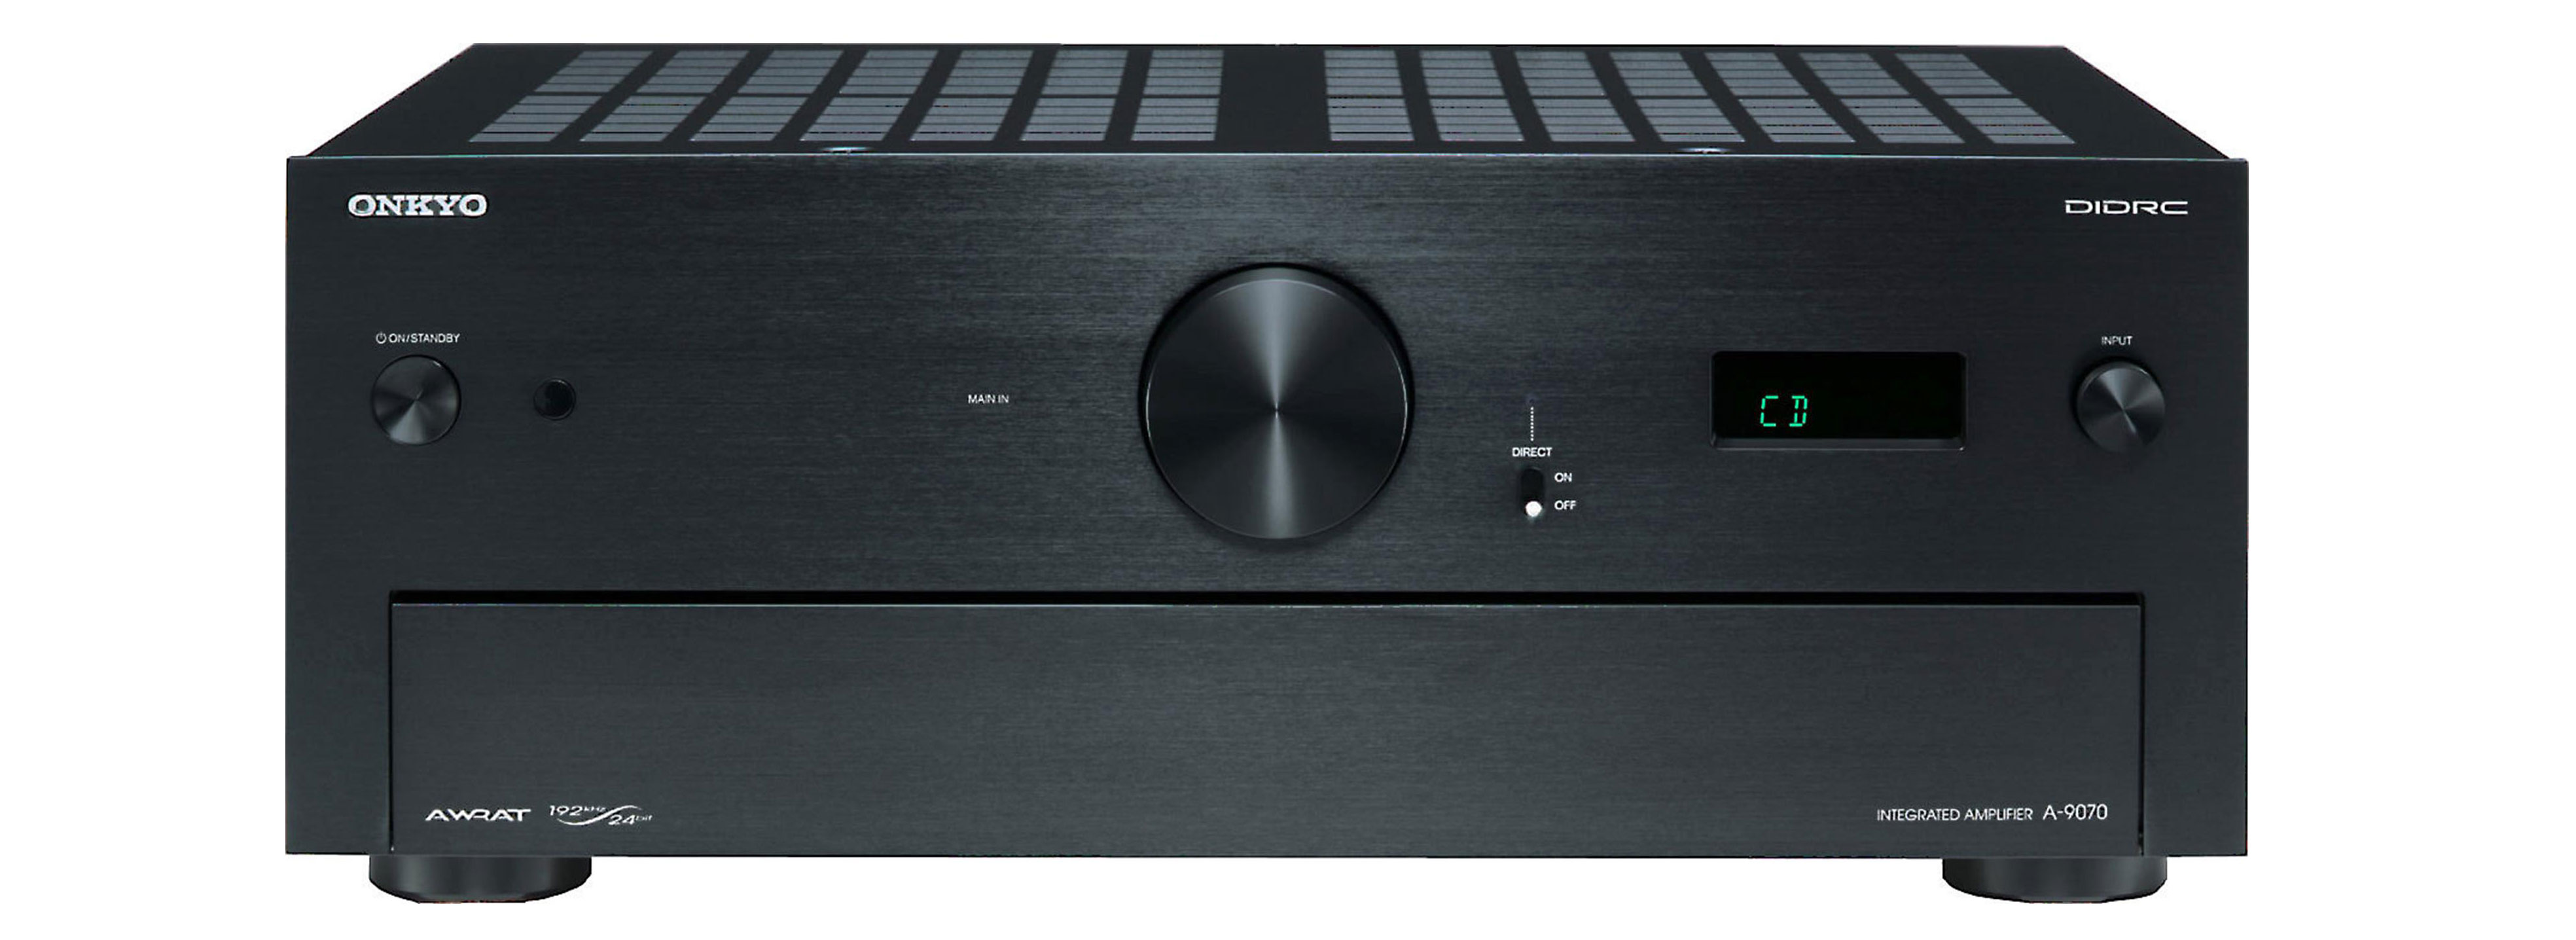 Onkyo A-9070 Integrated Amplifier